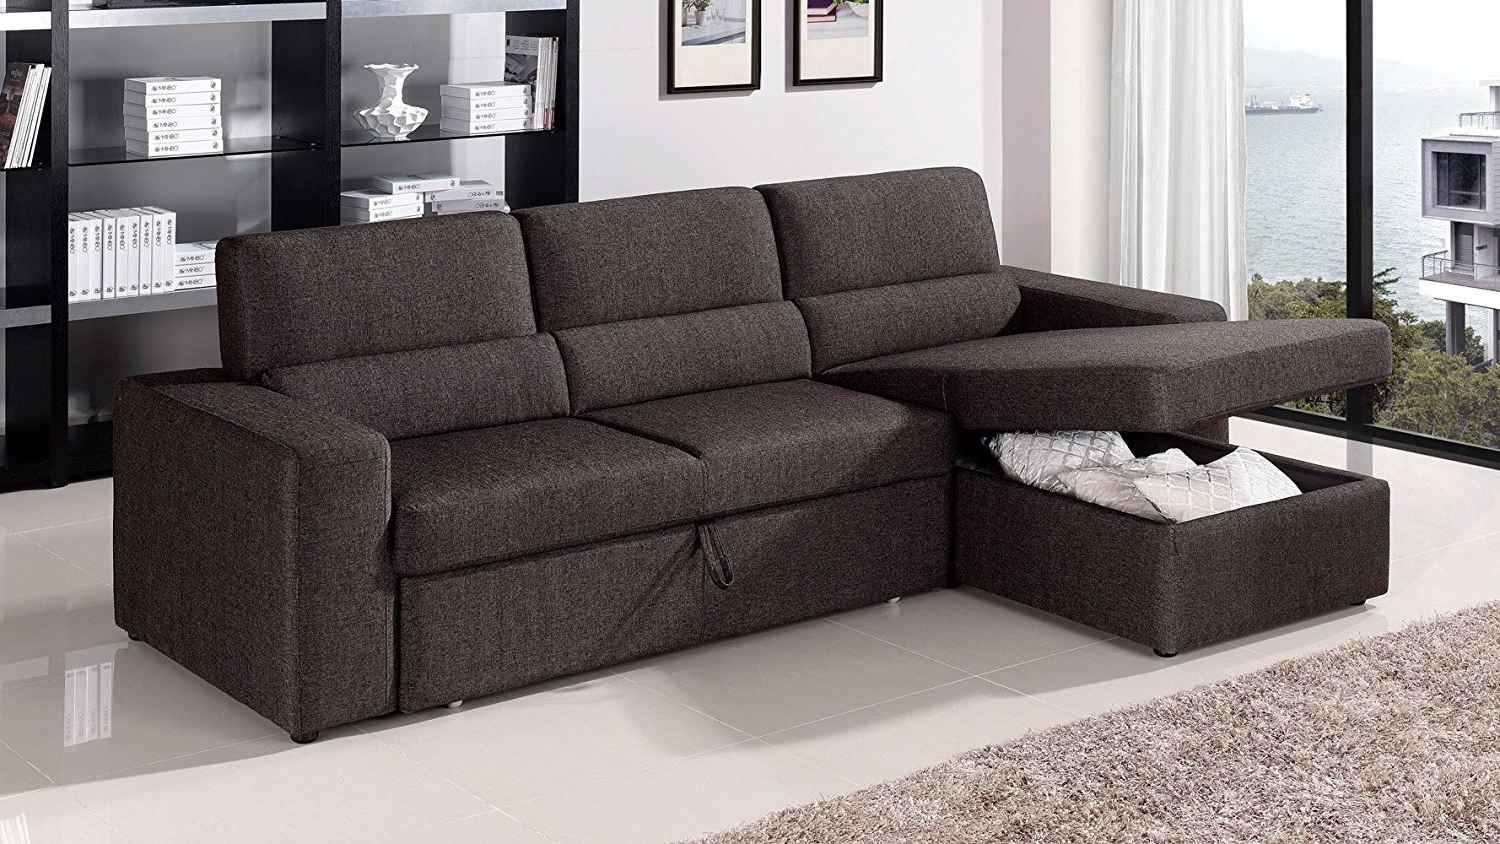 Sectional Sofas With Storage Throughout Recent Amazon: Black/brown Clubber Sleeper Sectional Sofa – Left (View 13 of 15)